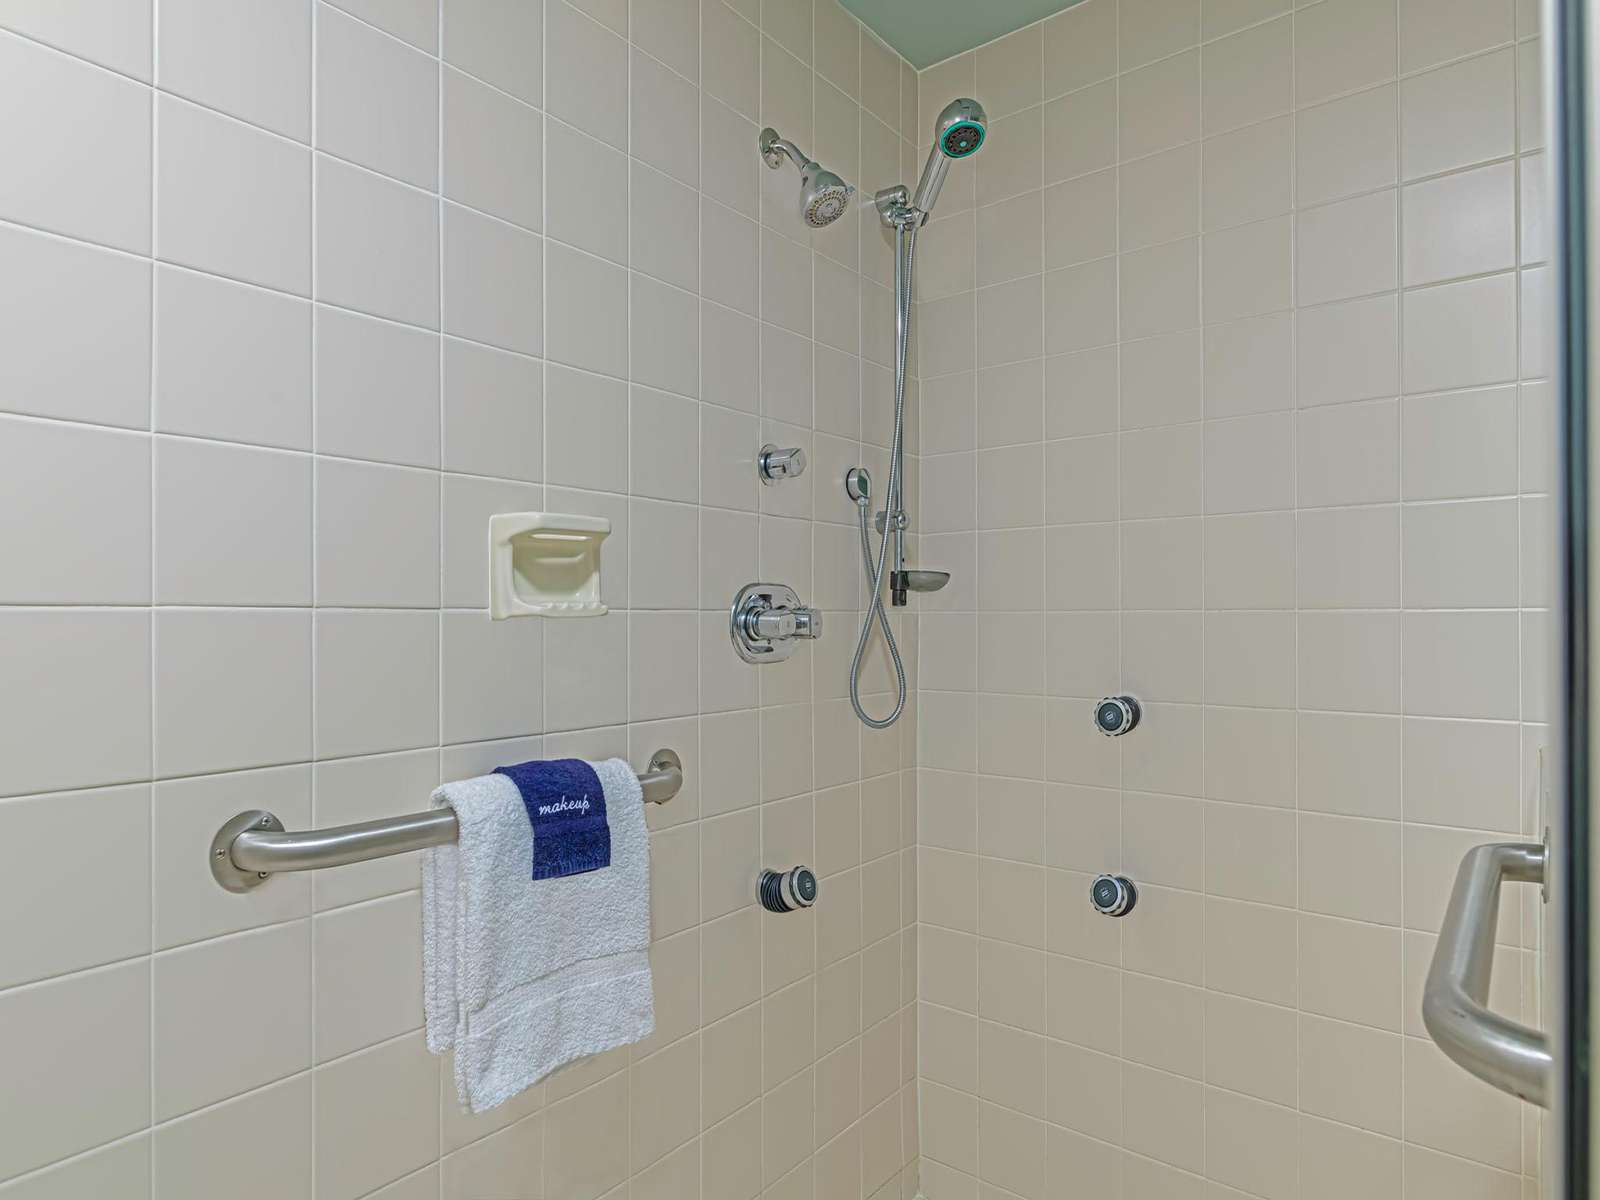 In wall jets and equipped for elderly needs!